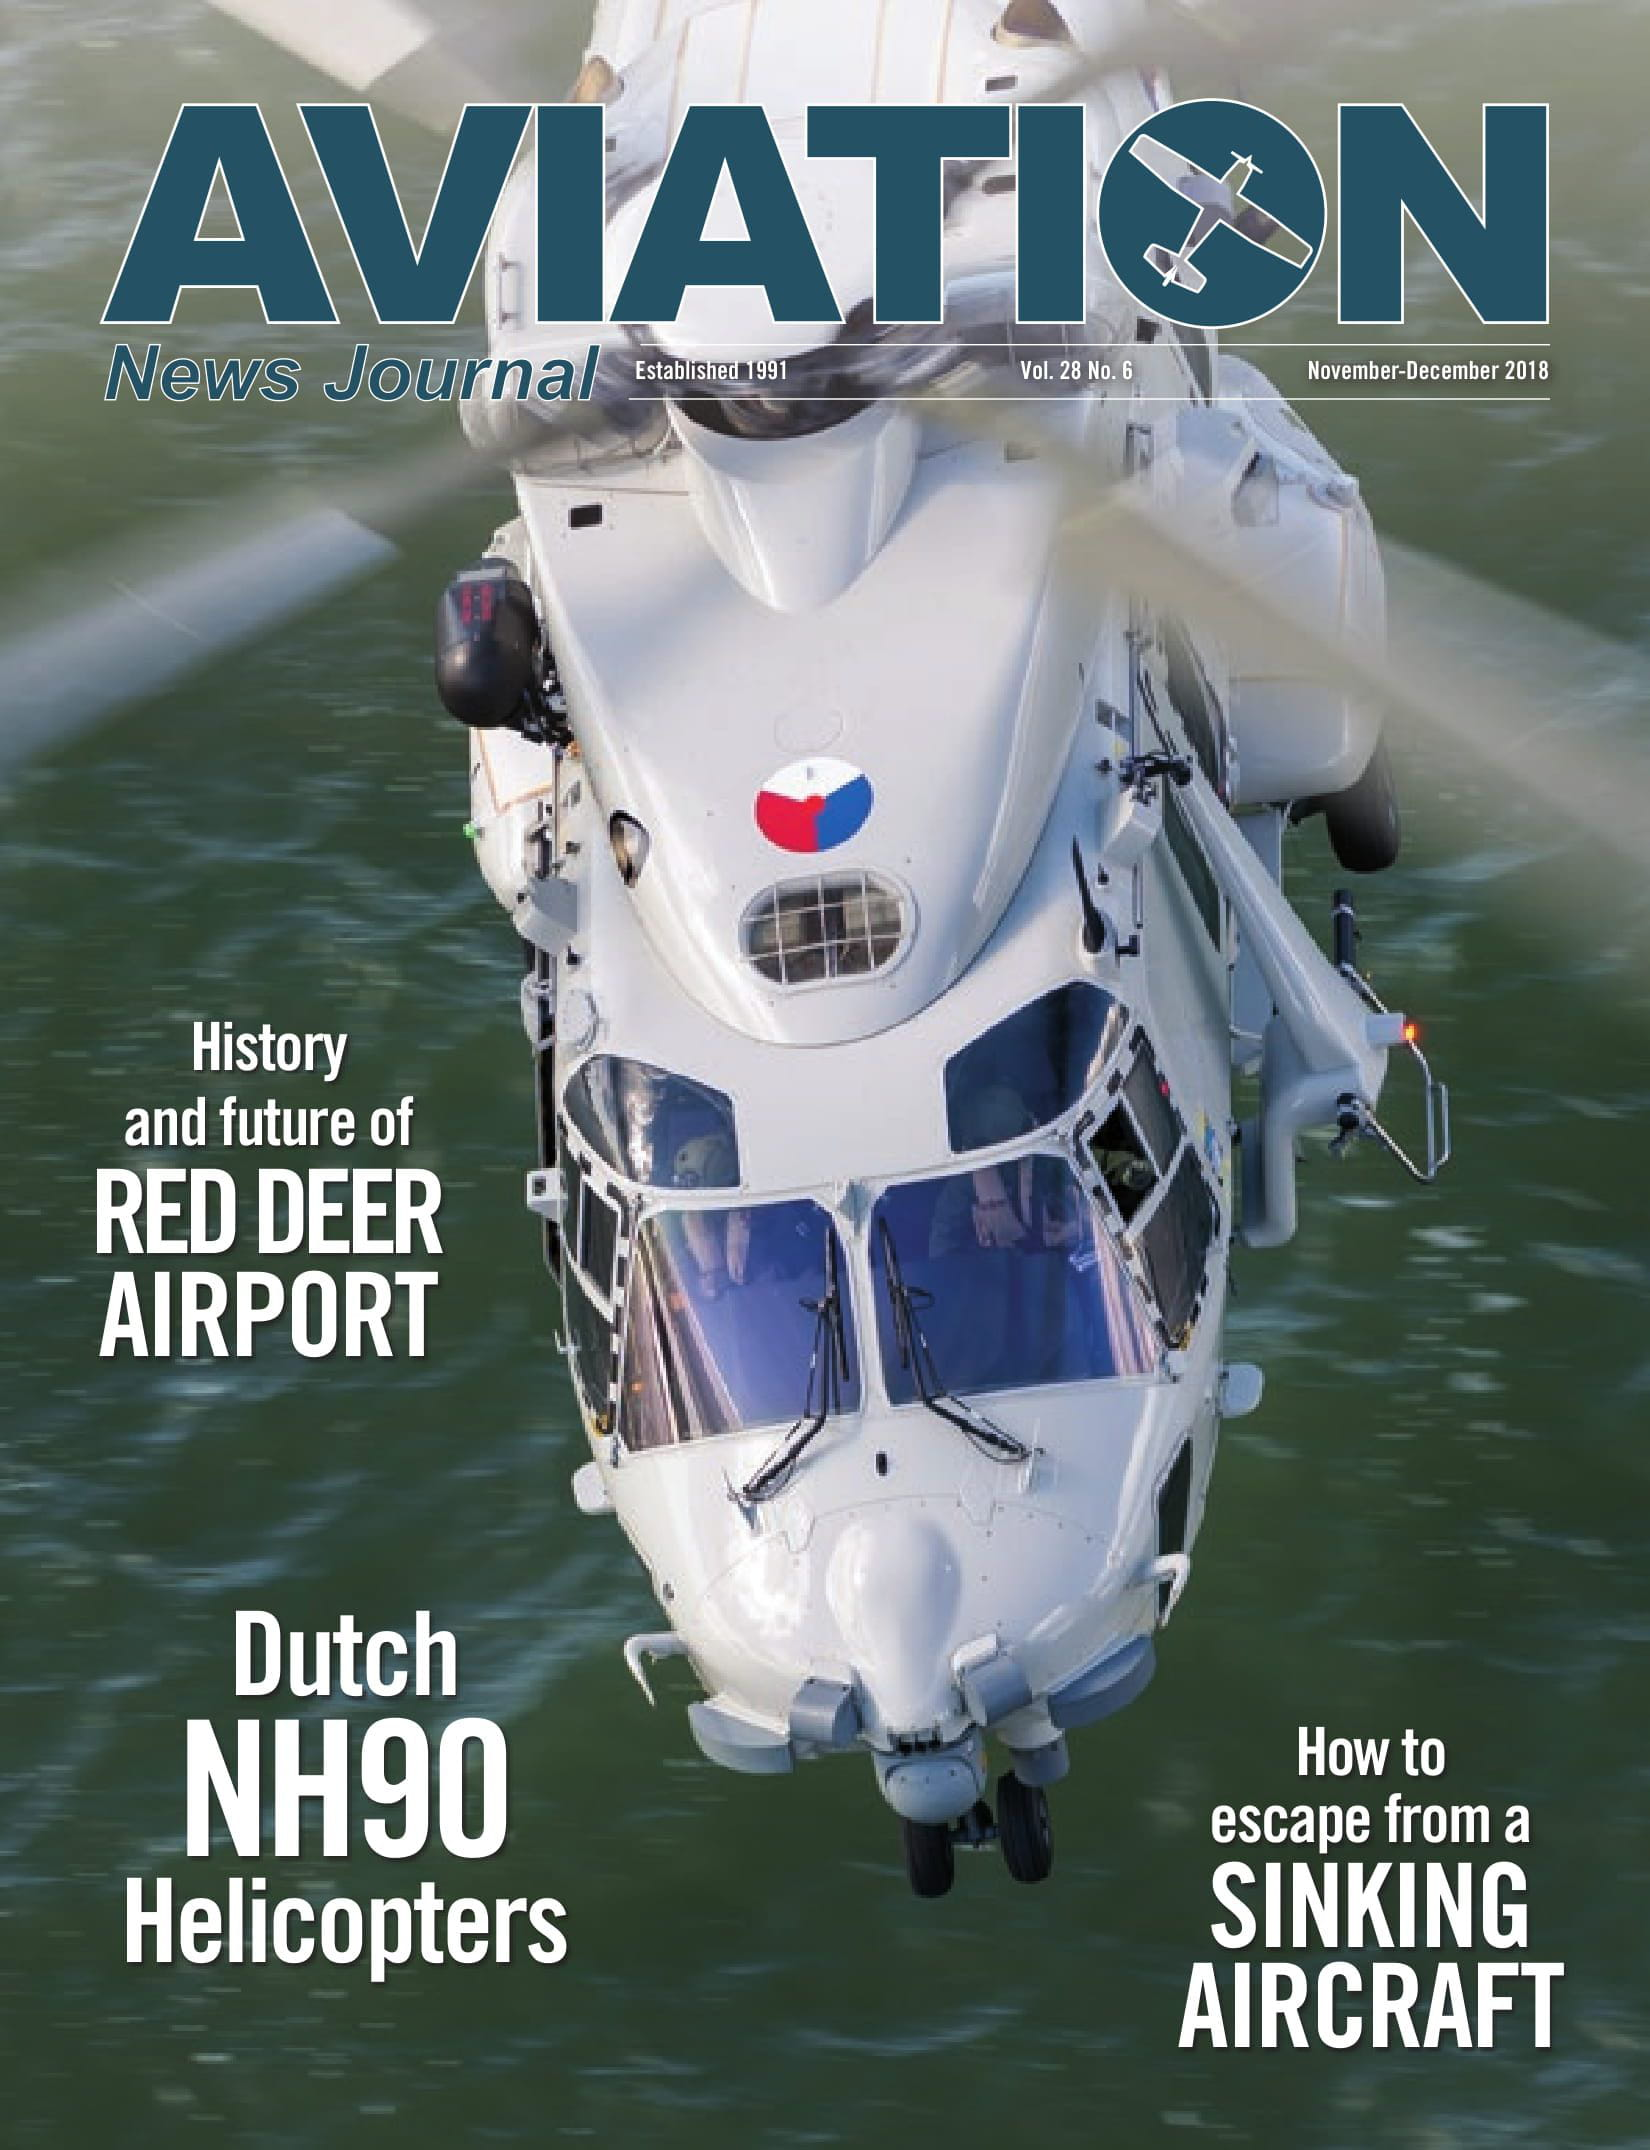 Aviation News Journal (Canada)_Dutch NH90 helicopters-01